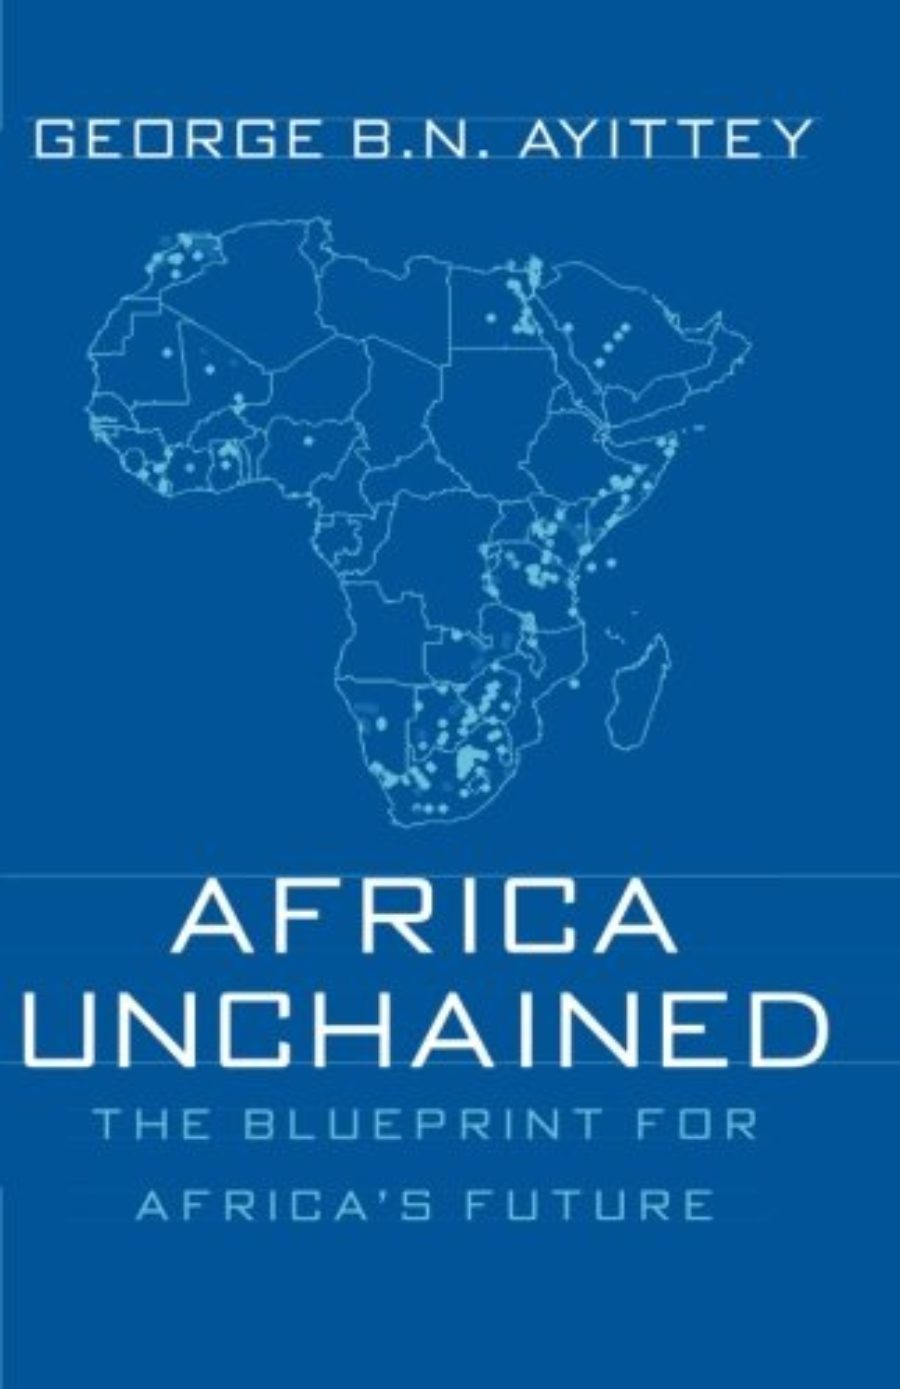 Cover of Africa Unchained: The Blueprint for Africa's Future